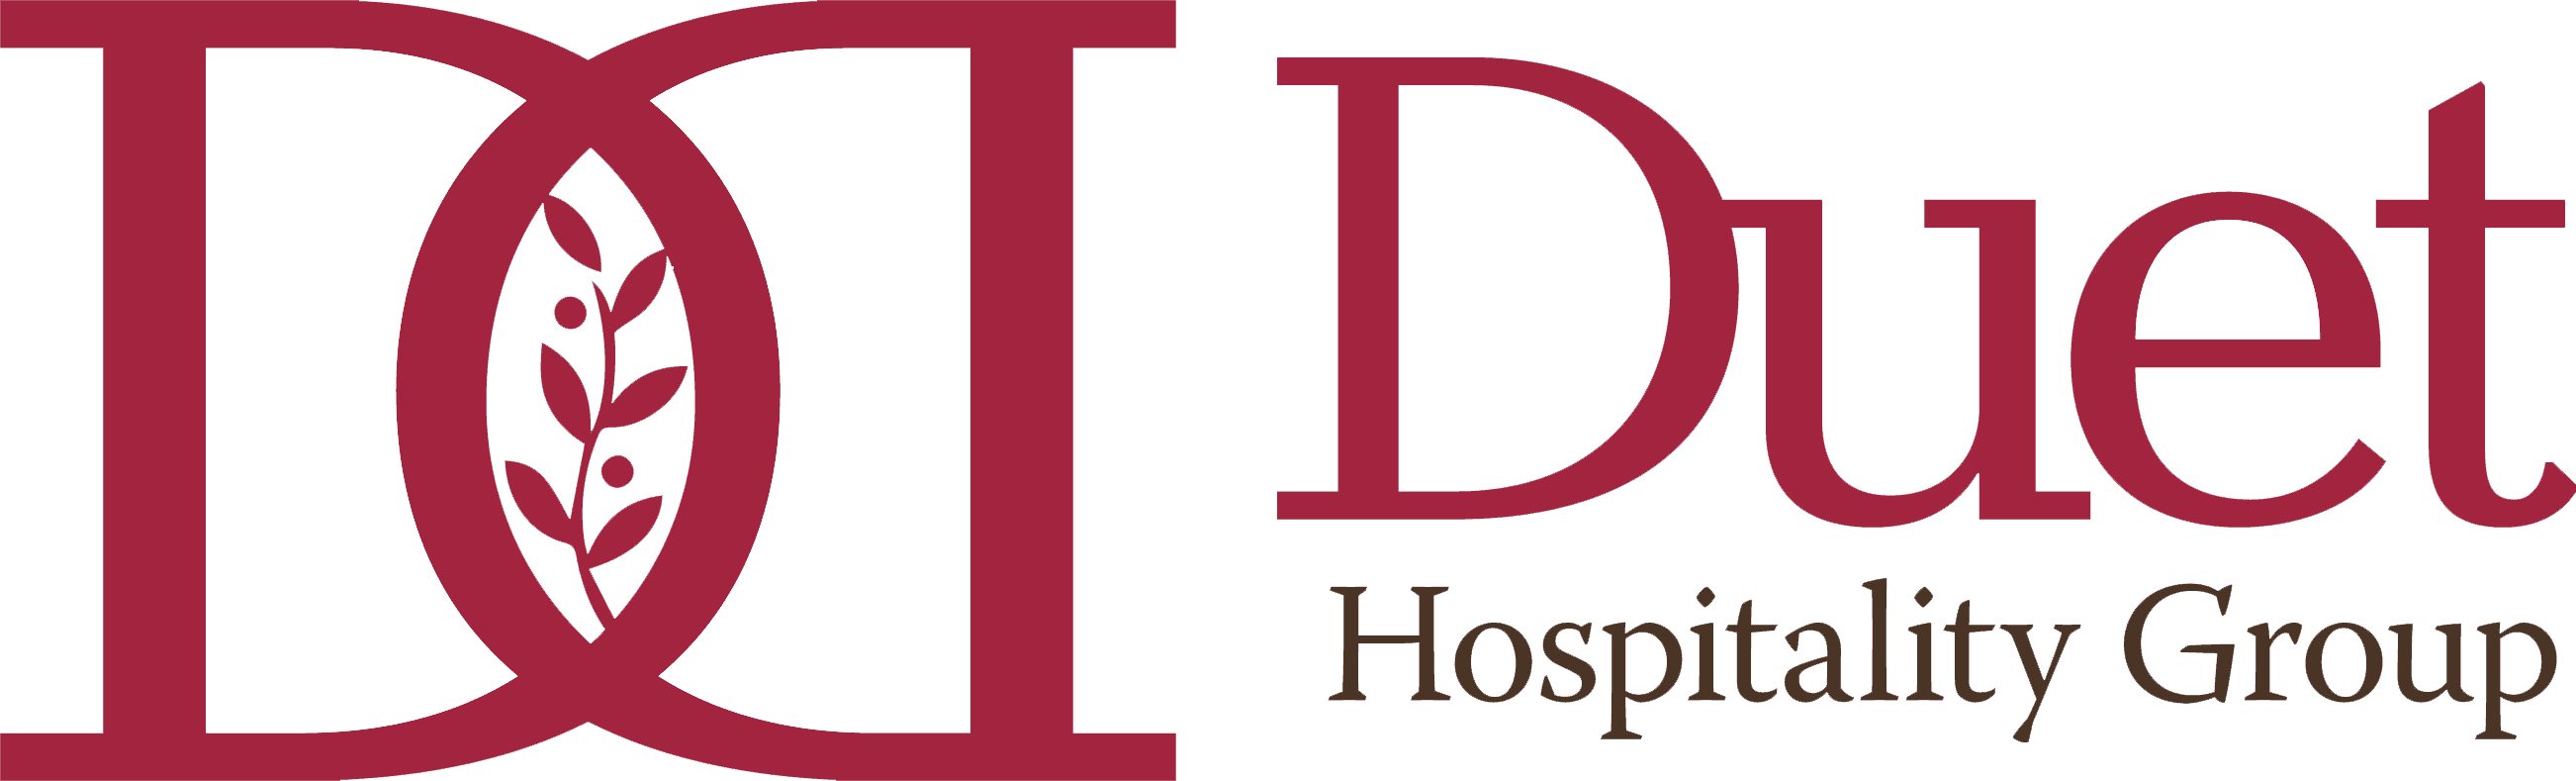 duet hospitality group logo